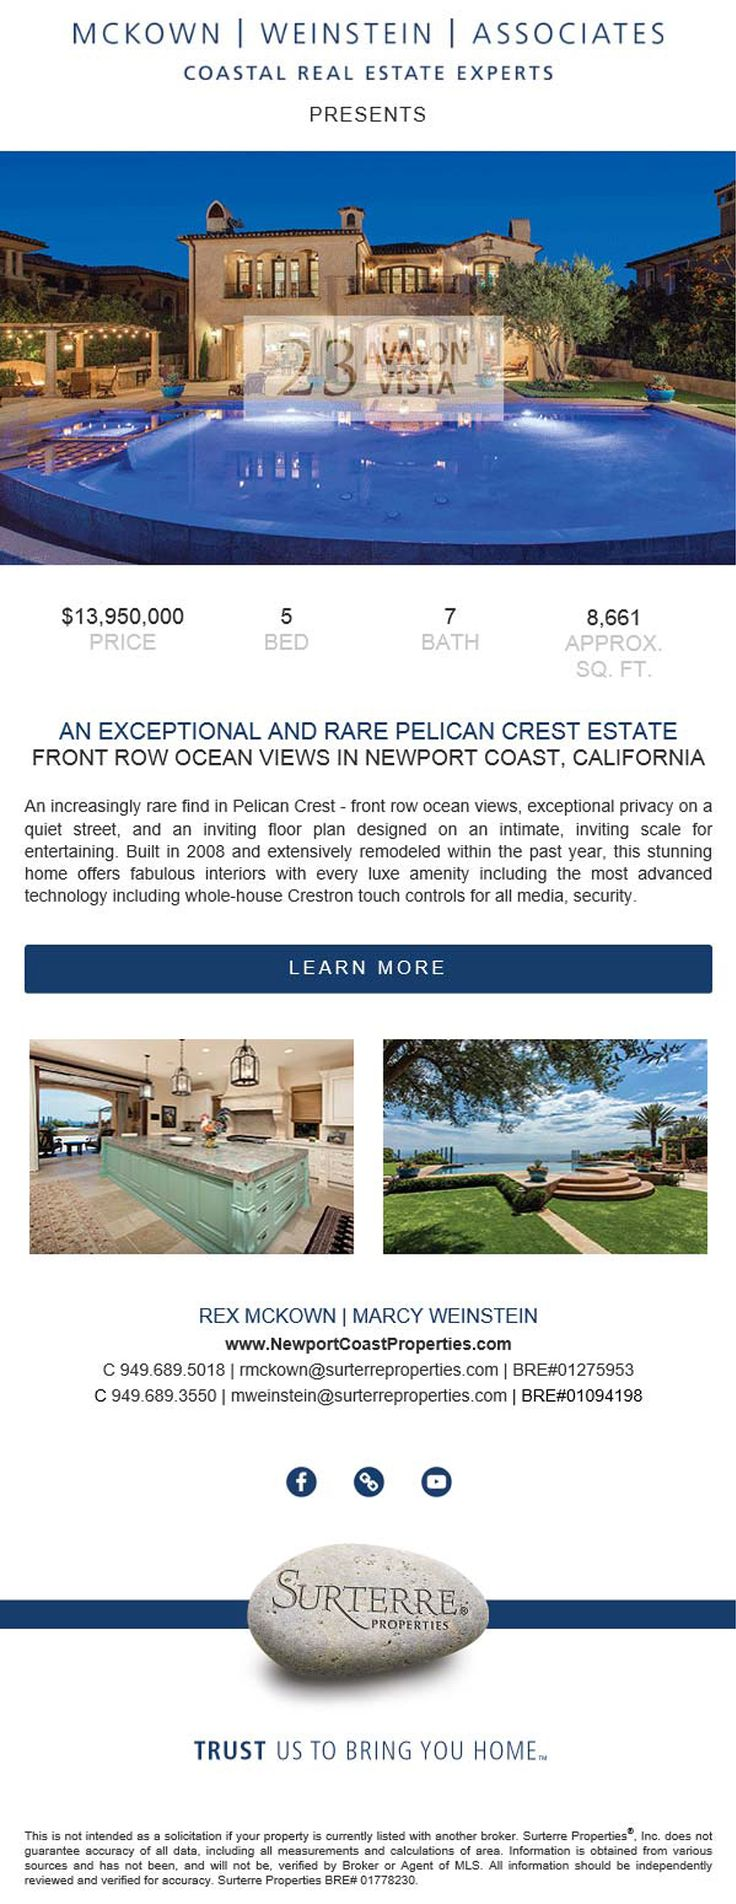 New Home for Sale in the Newport Coast, California  Rare Ocean View Estate in Newport Beach  23 Avalon Vista  5 Bed     7 Bath     8,661 sq. ft.     Exceptional Privacy     Whole-House Technology     Infinity Pool & Spa with Baja Shelf     Fire Features     Secluded Patios     Airy Rooms     Large Chef's Kitchen     Spacious Elevator  http://mwa.prop.cards/NP17169578#cover